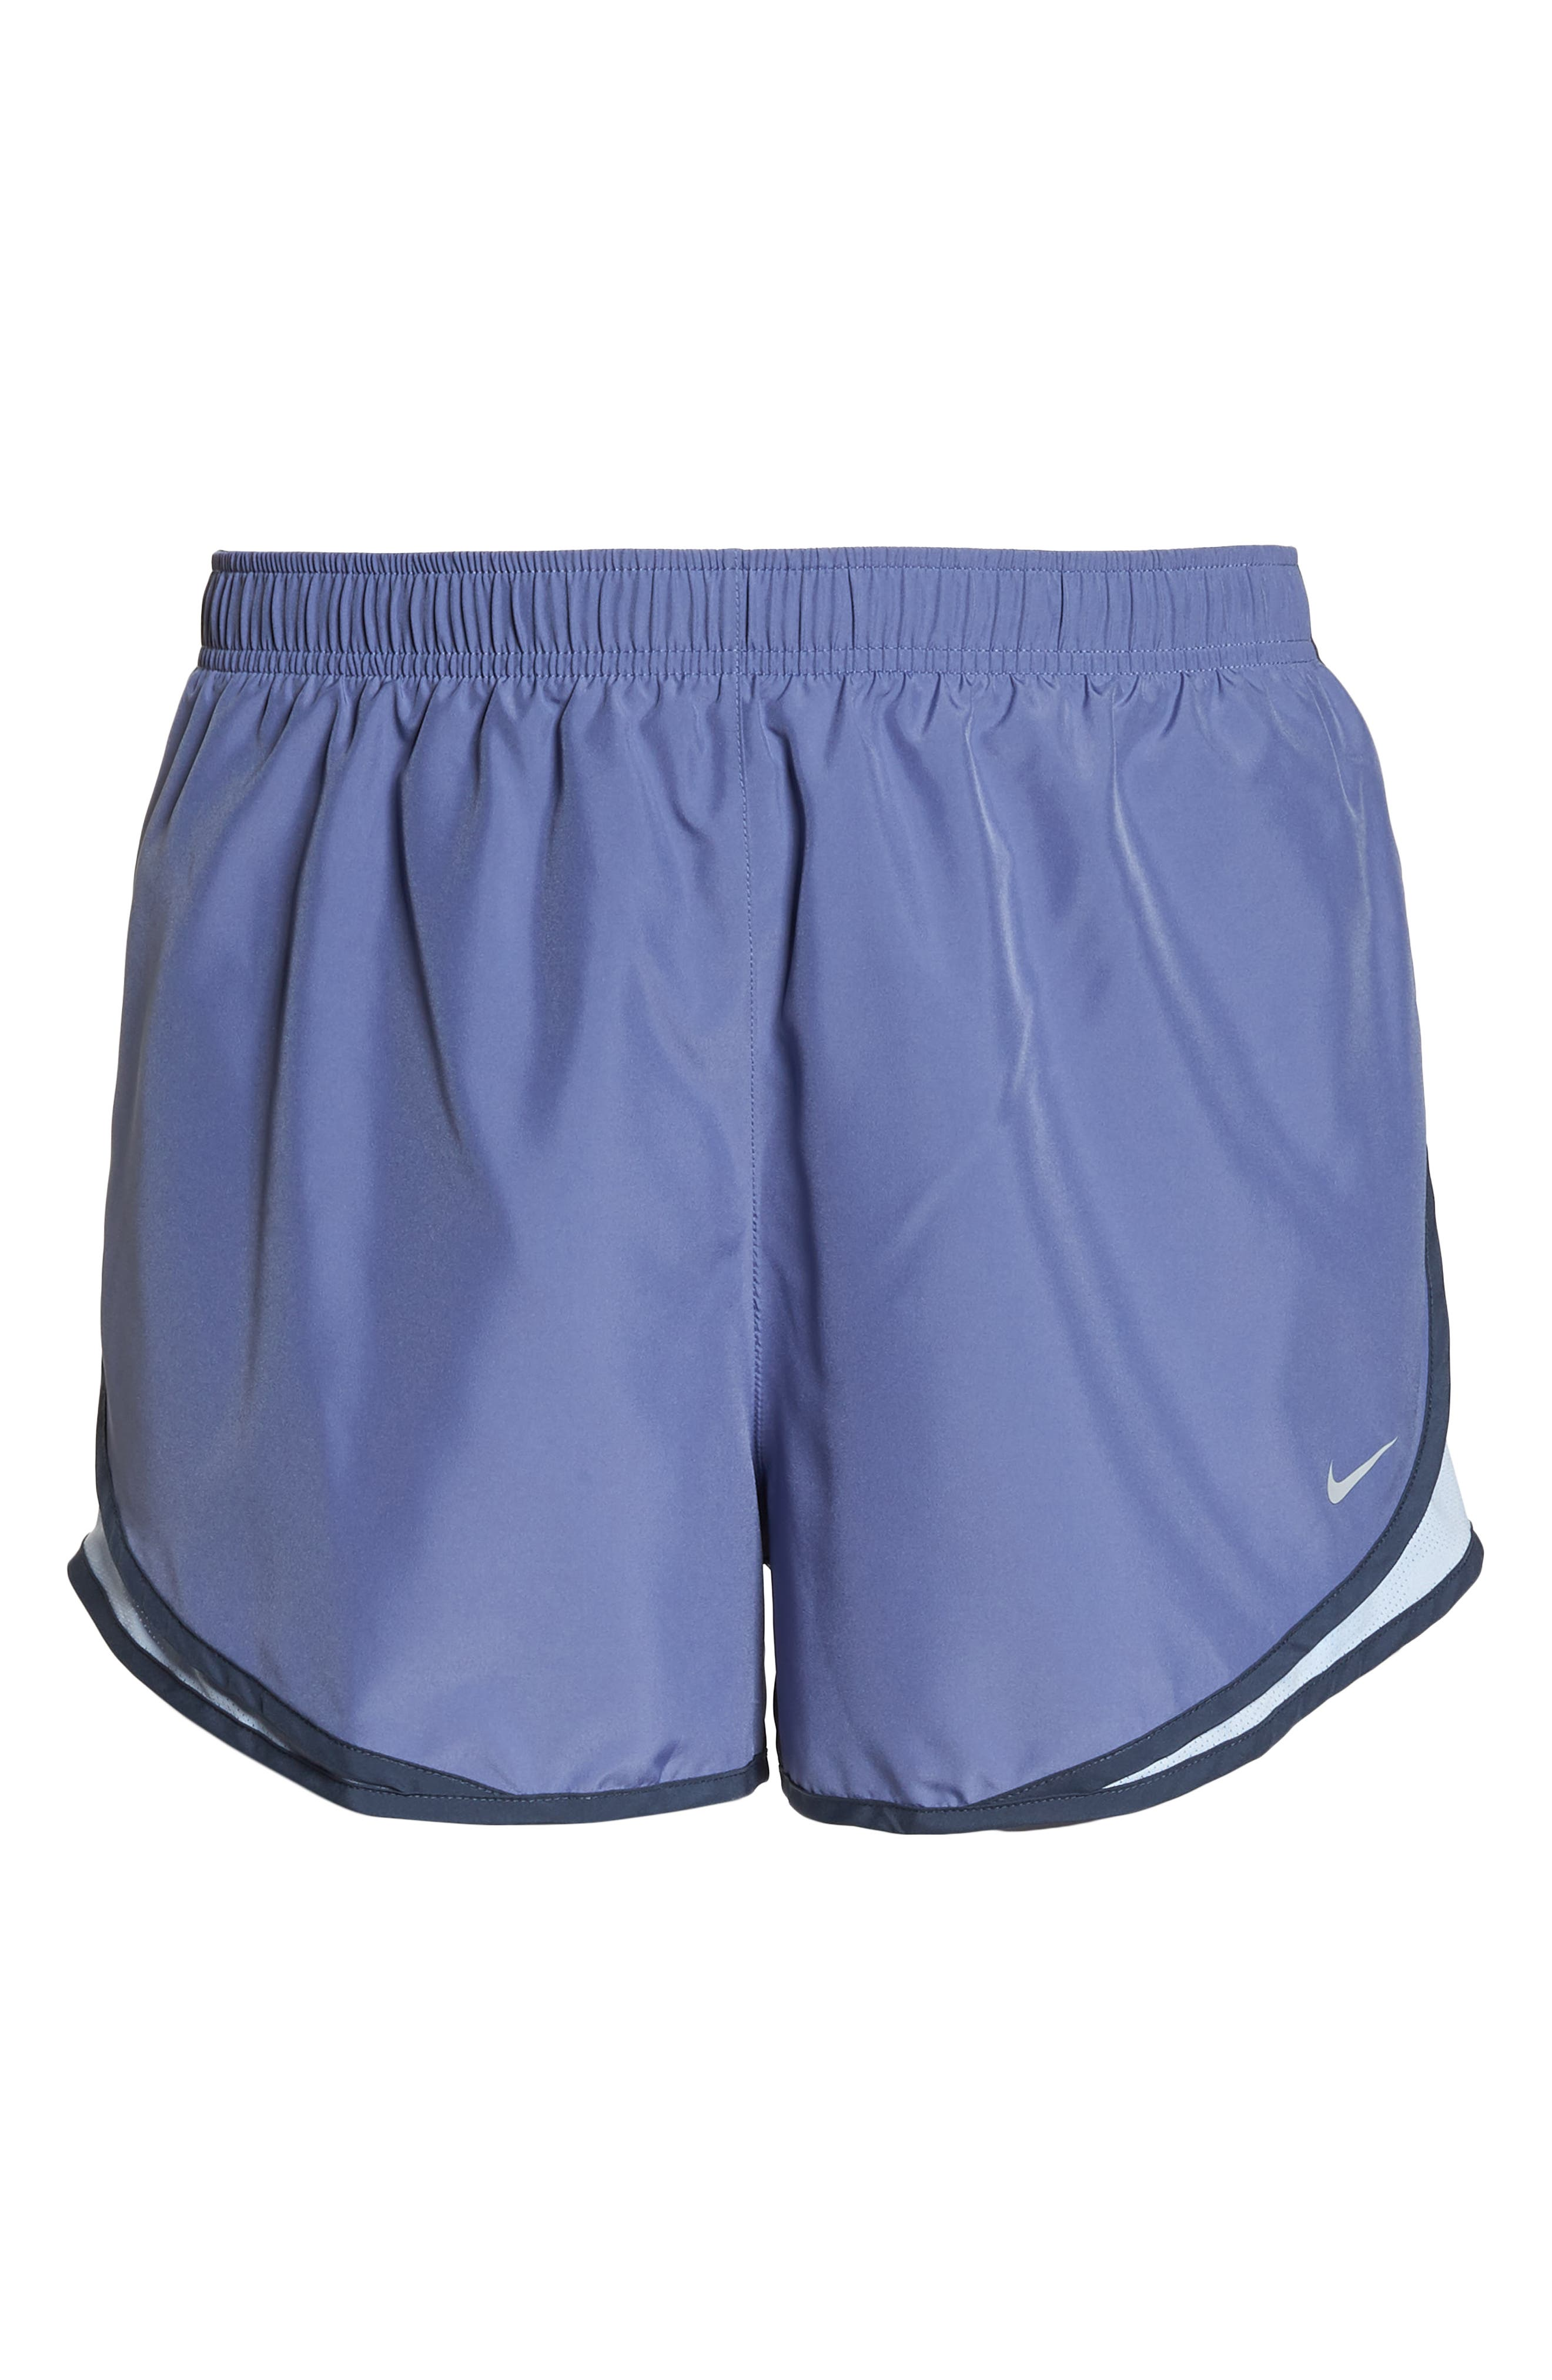 Dry Tempo Running Shorts,                             Alternate thumbnail 7, color,                             Purple Slate/Wolf Grey